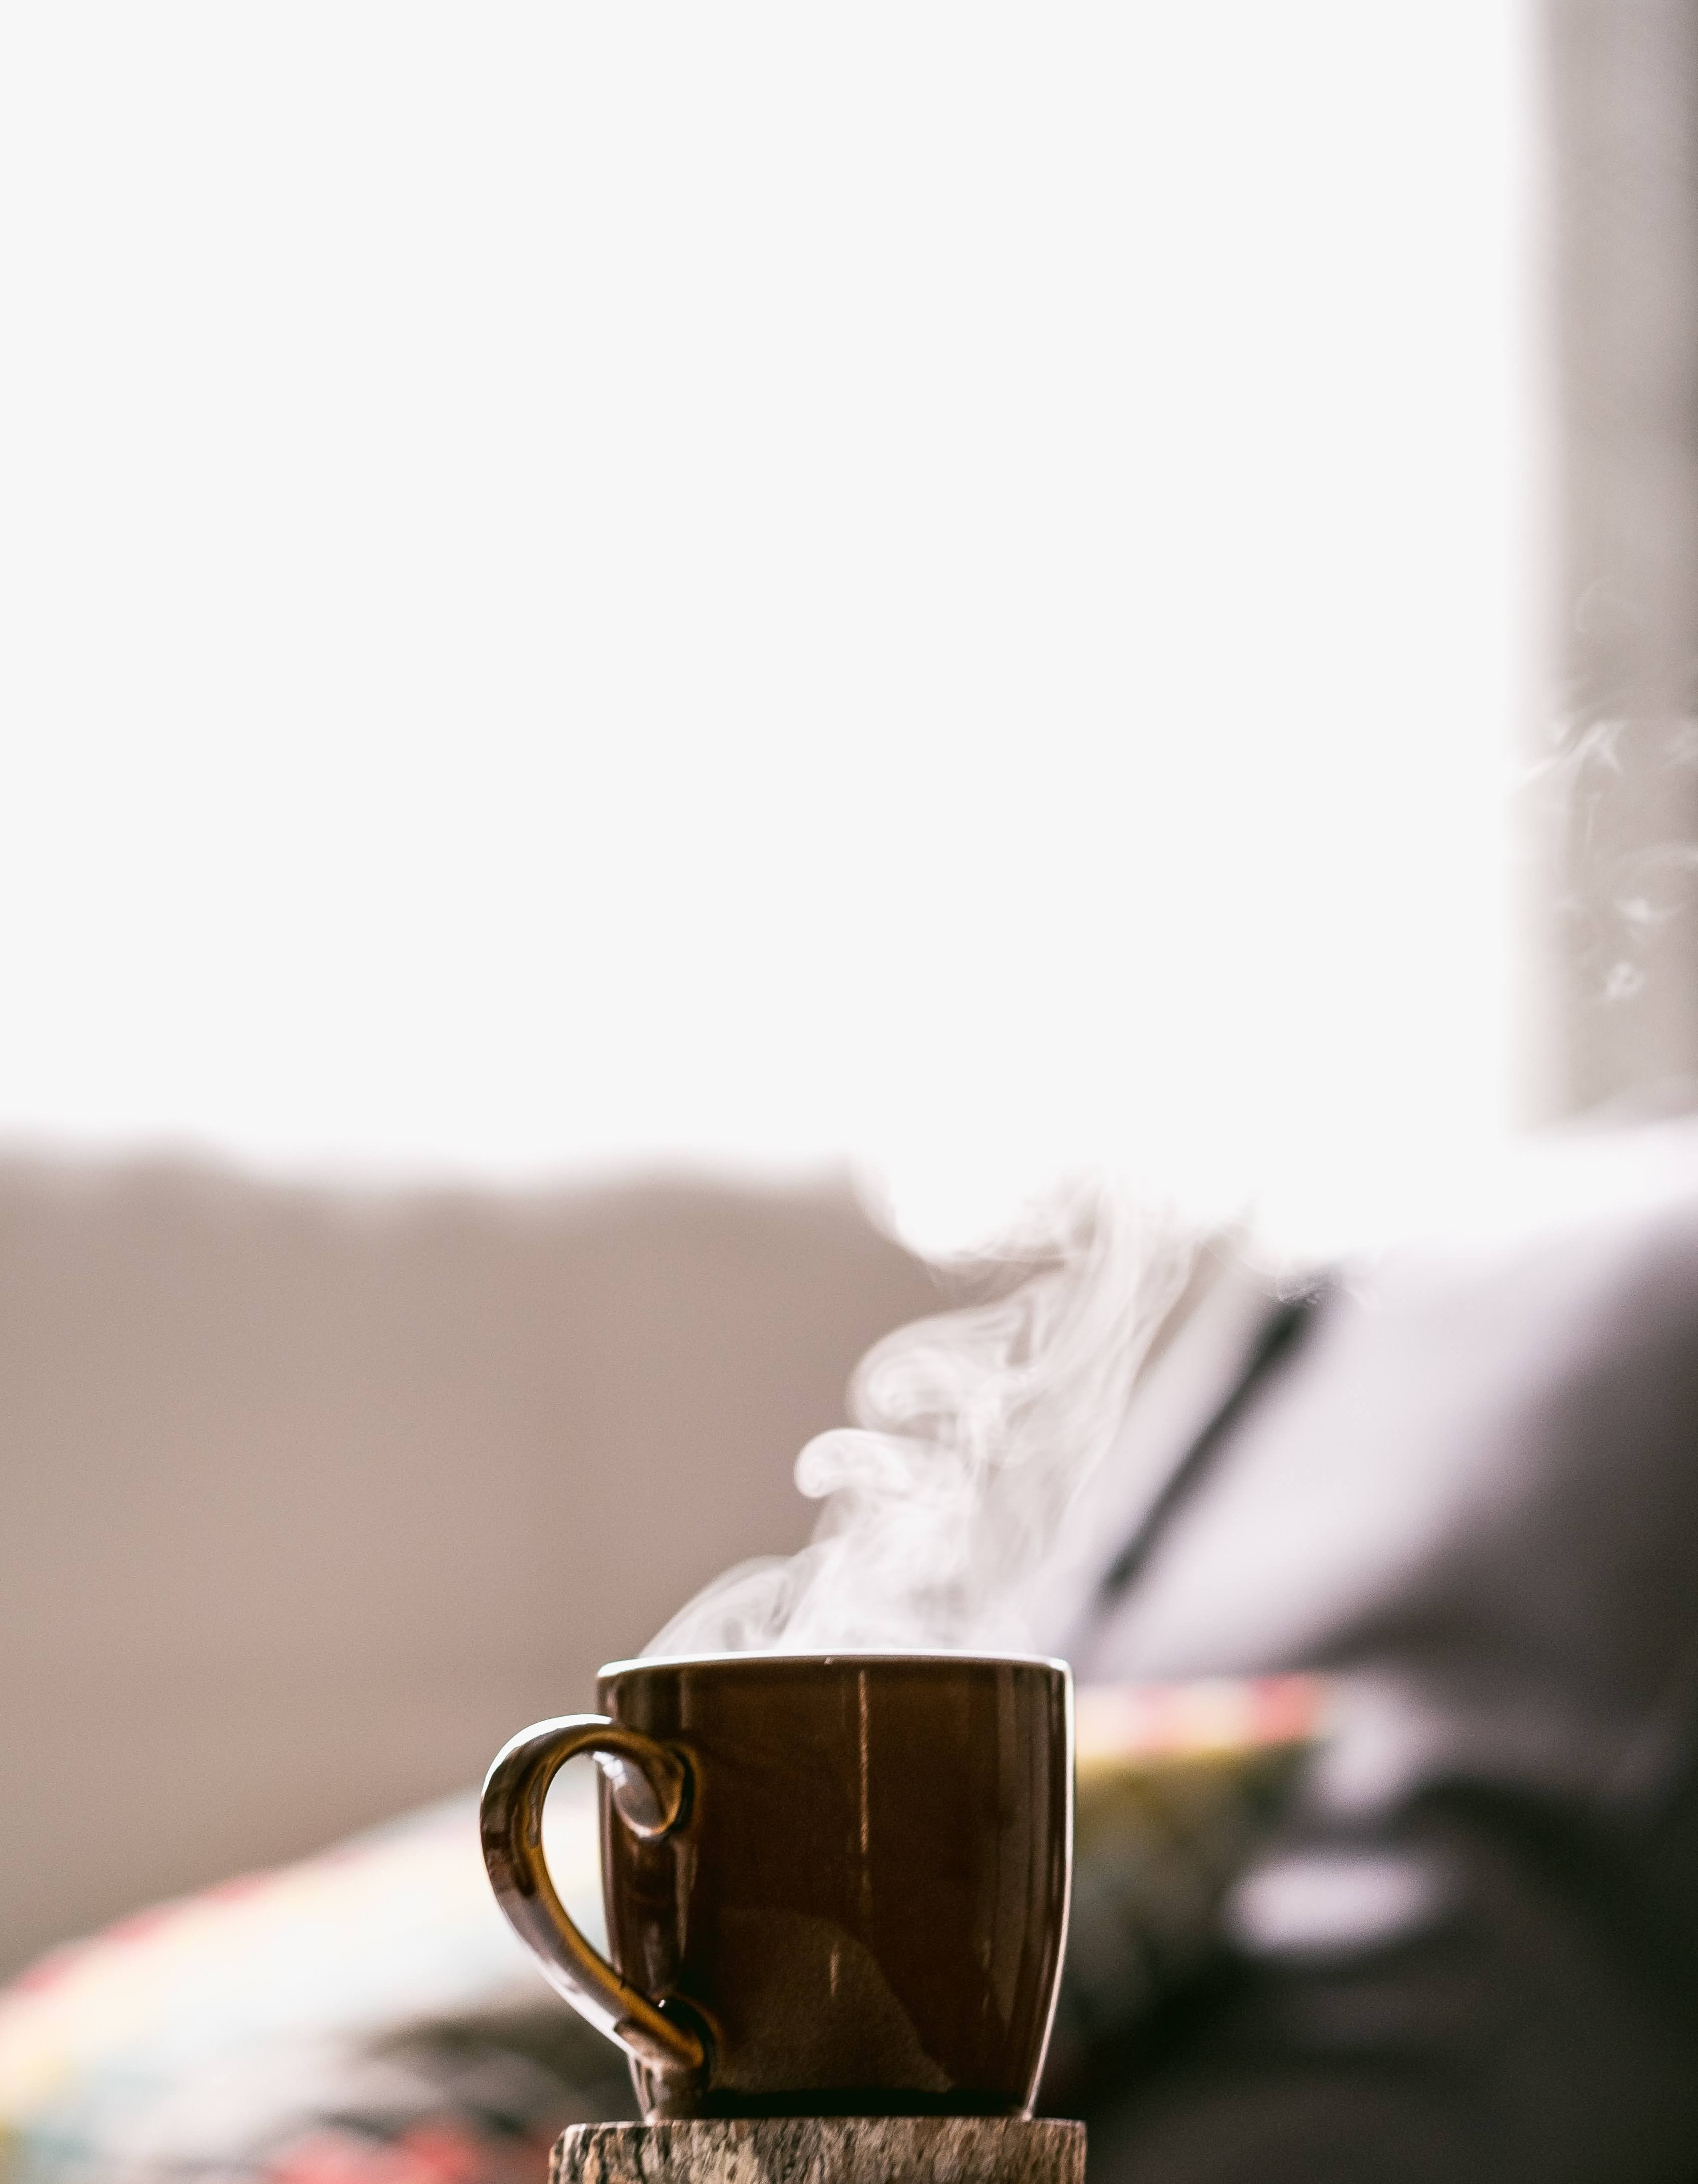 Shallow Focus Photography of Hot Coffee in Mug with Saucer | Photo by Tim Foster via Unsplash